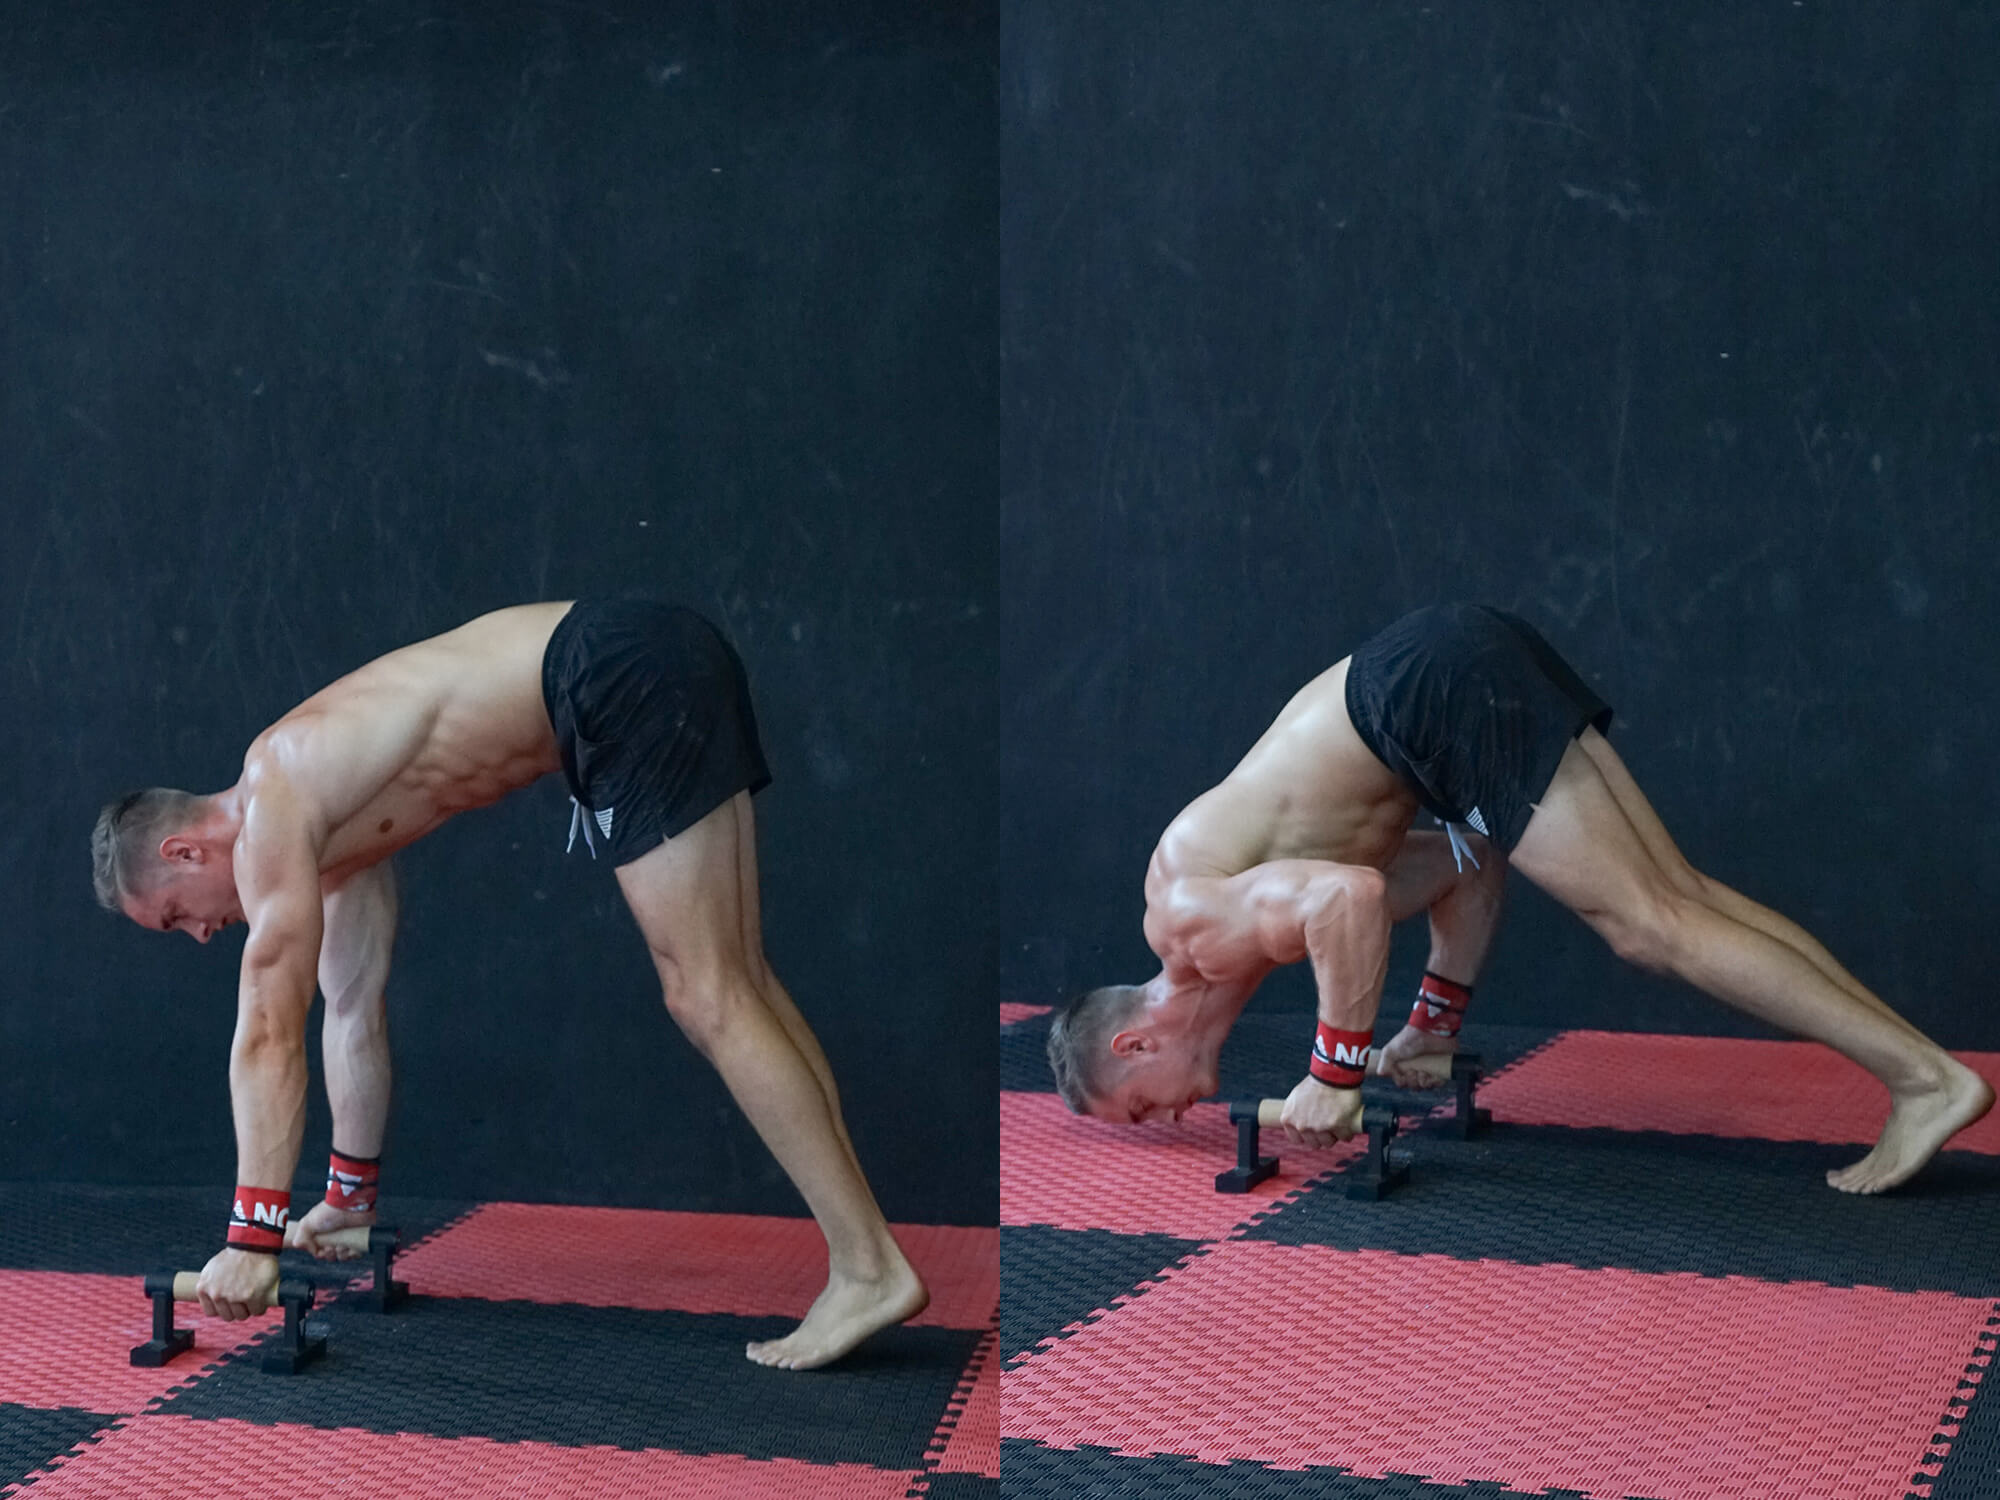 athlete doing push up variations on parallettes